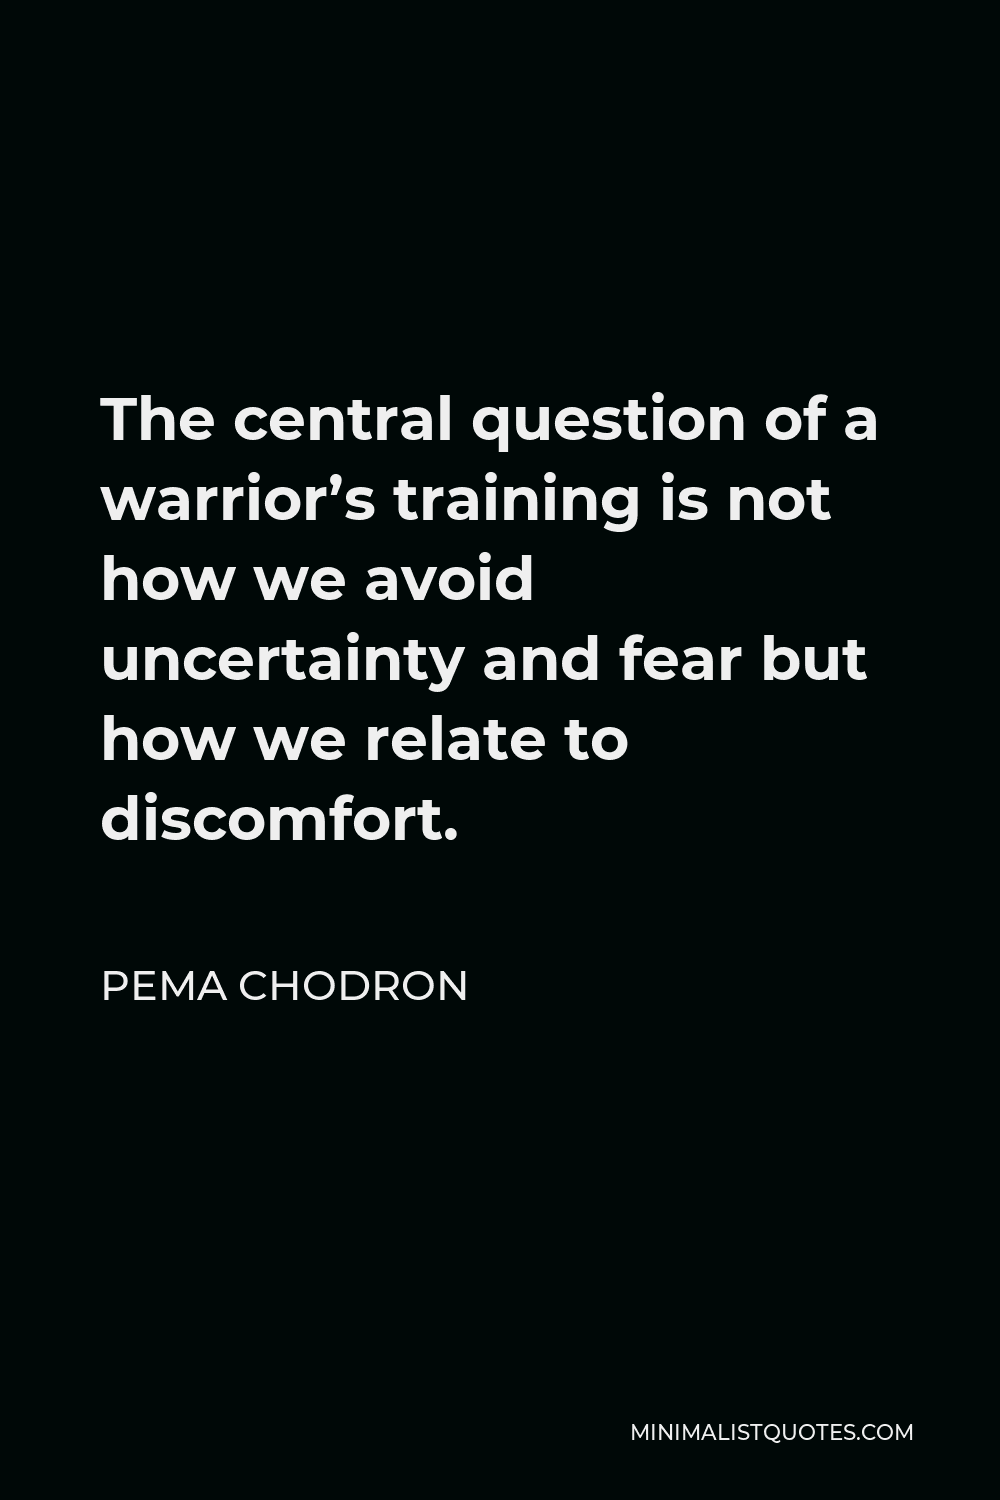 Pema Chodron Quote - The central question of a warrior's training is not how we avoid uncertainty and fear but how we relate to discomfort.